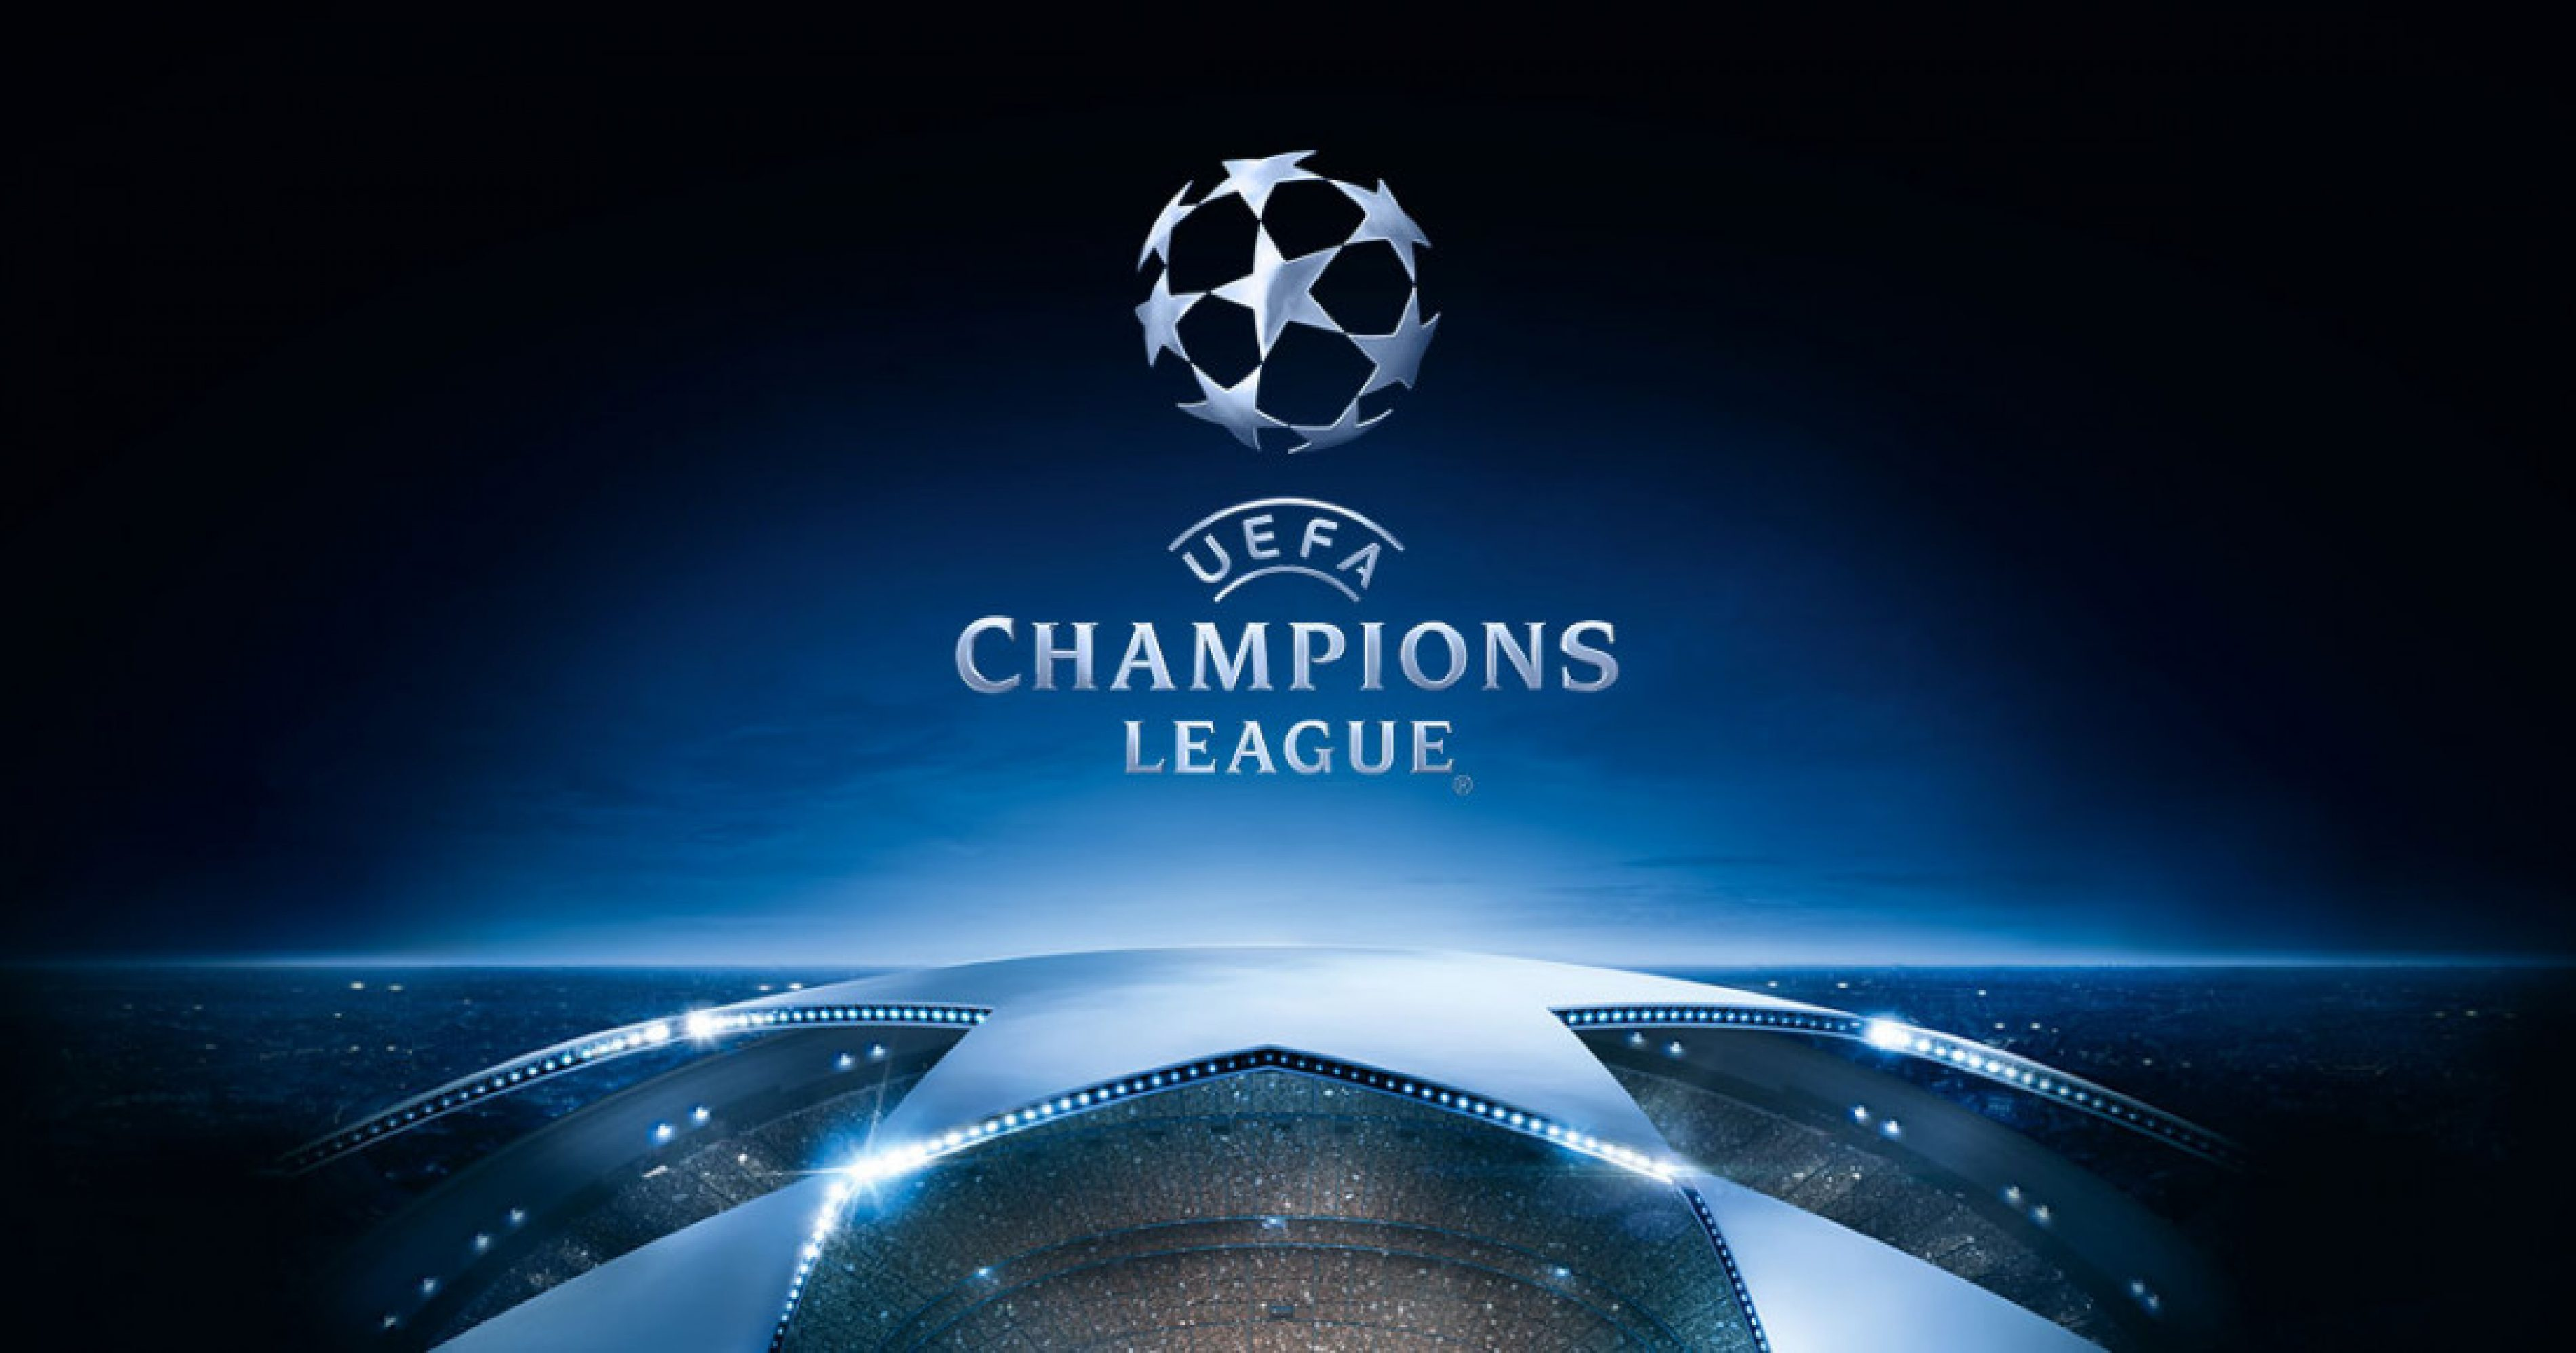 champions league logo 1 3800x1996 c copy